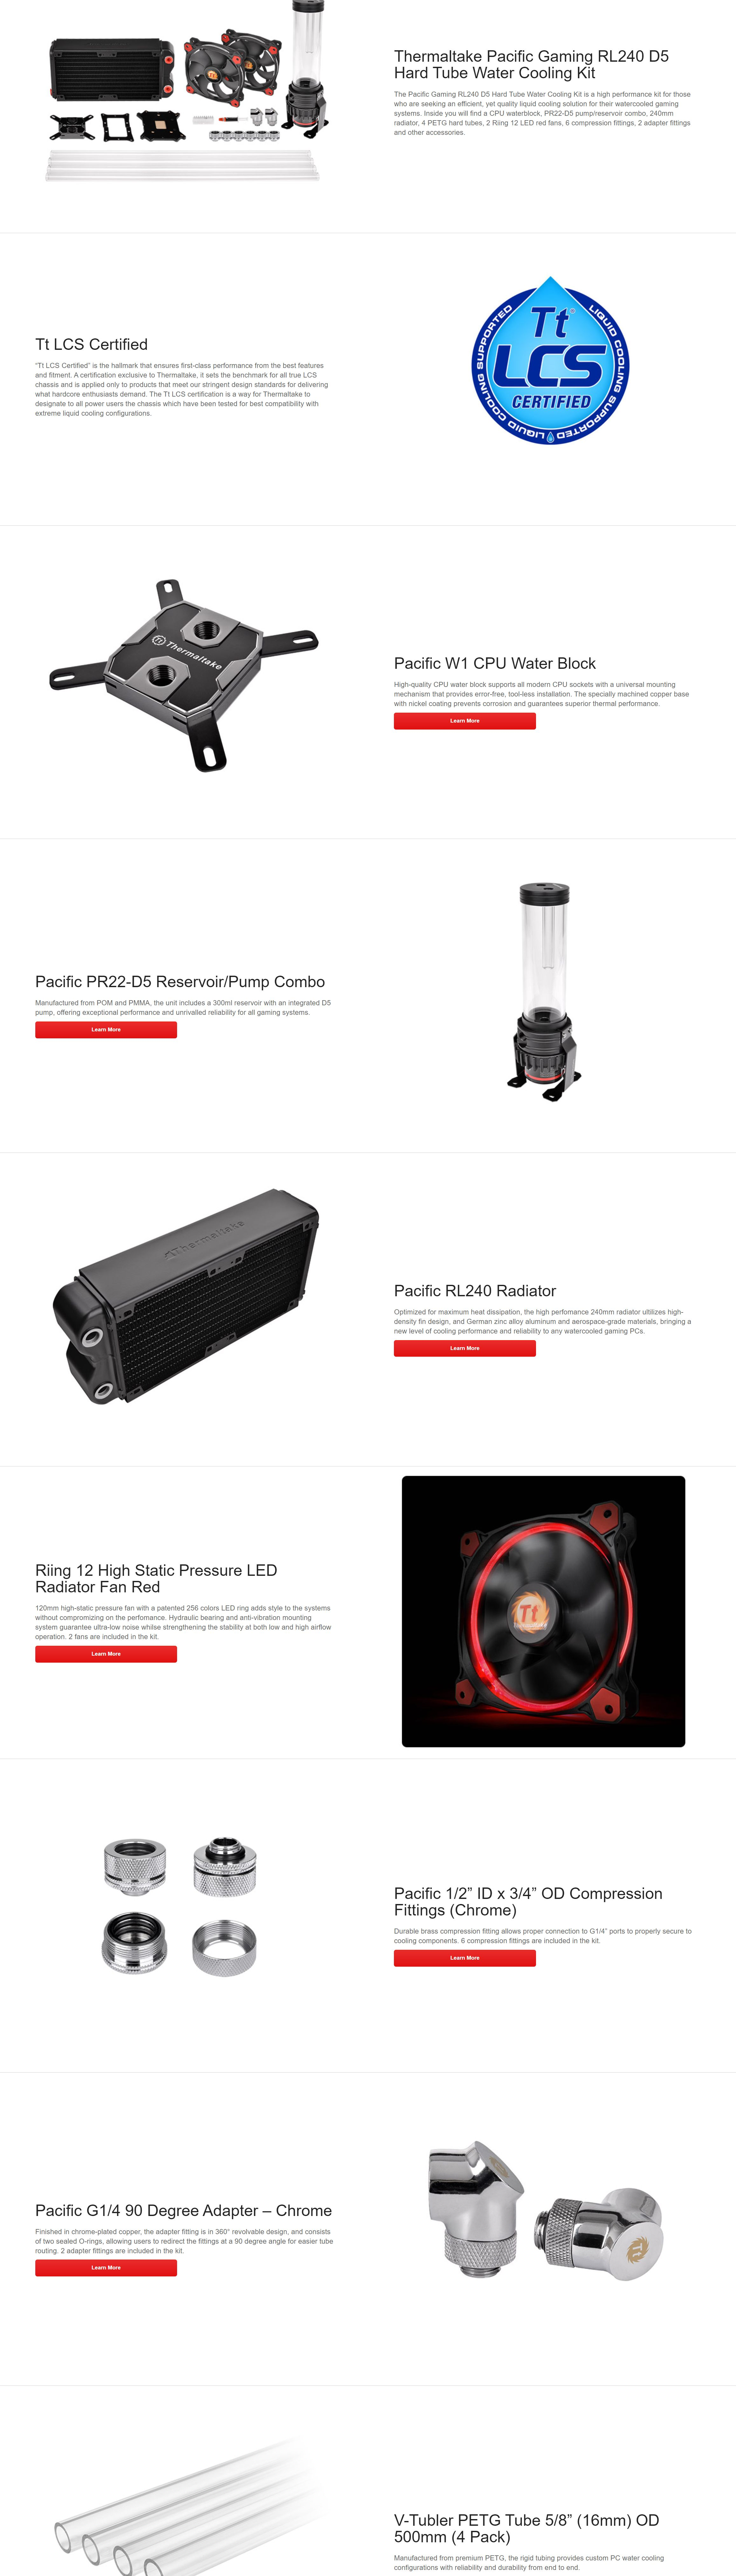 #1469 - 'Pacific Gaming RL240 D5 Hard Tube Water Cooling Kit' - www_thermaltake_com_au.jpg